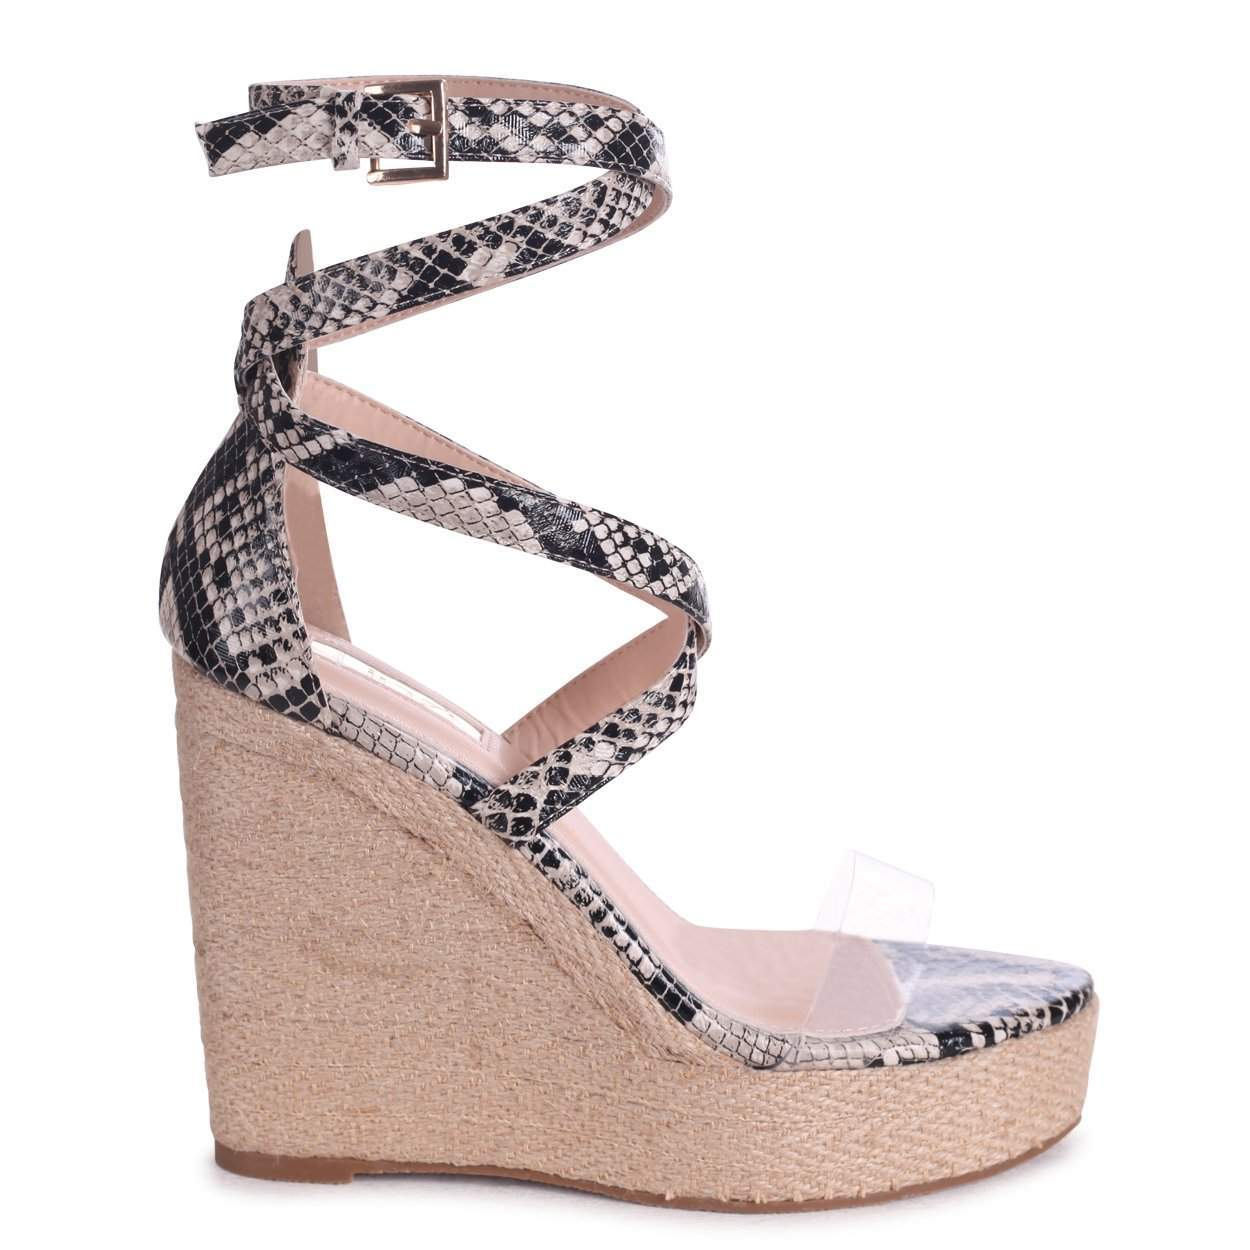 DANIELLE - Natural Snake Rope Platform Wedge With Perspex Front Strap